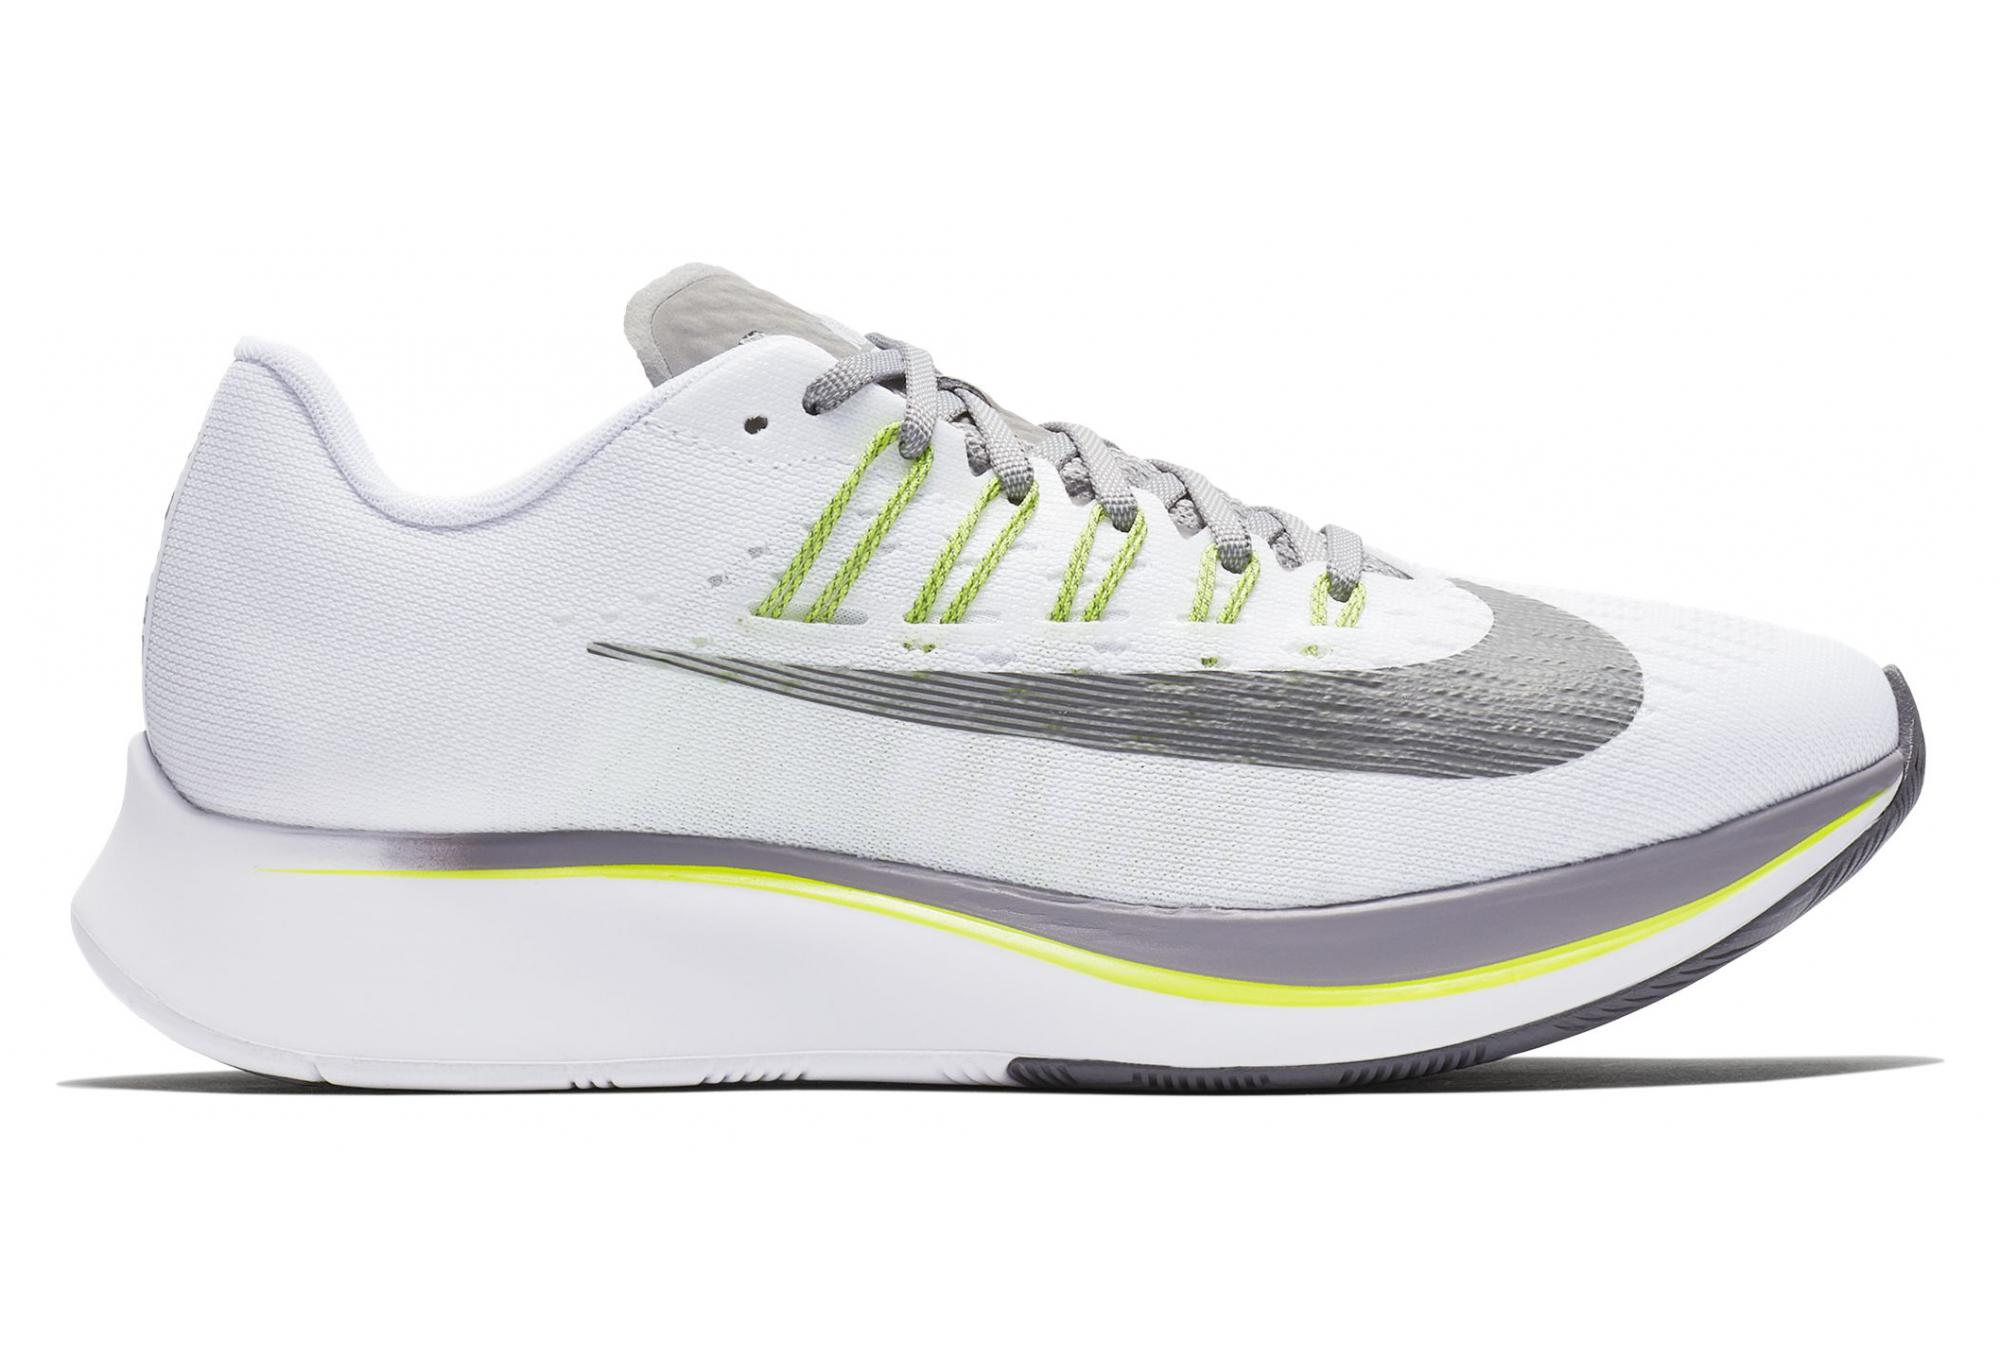 Nike Women White Scarpe Jcq5l3ar4 Yellow Fly Zoom eD9YEH2IWb